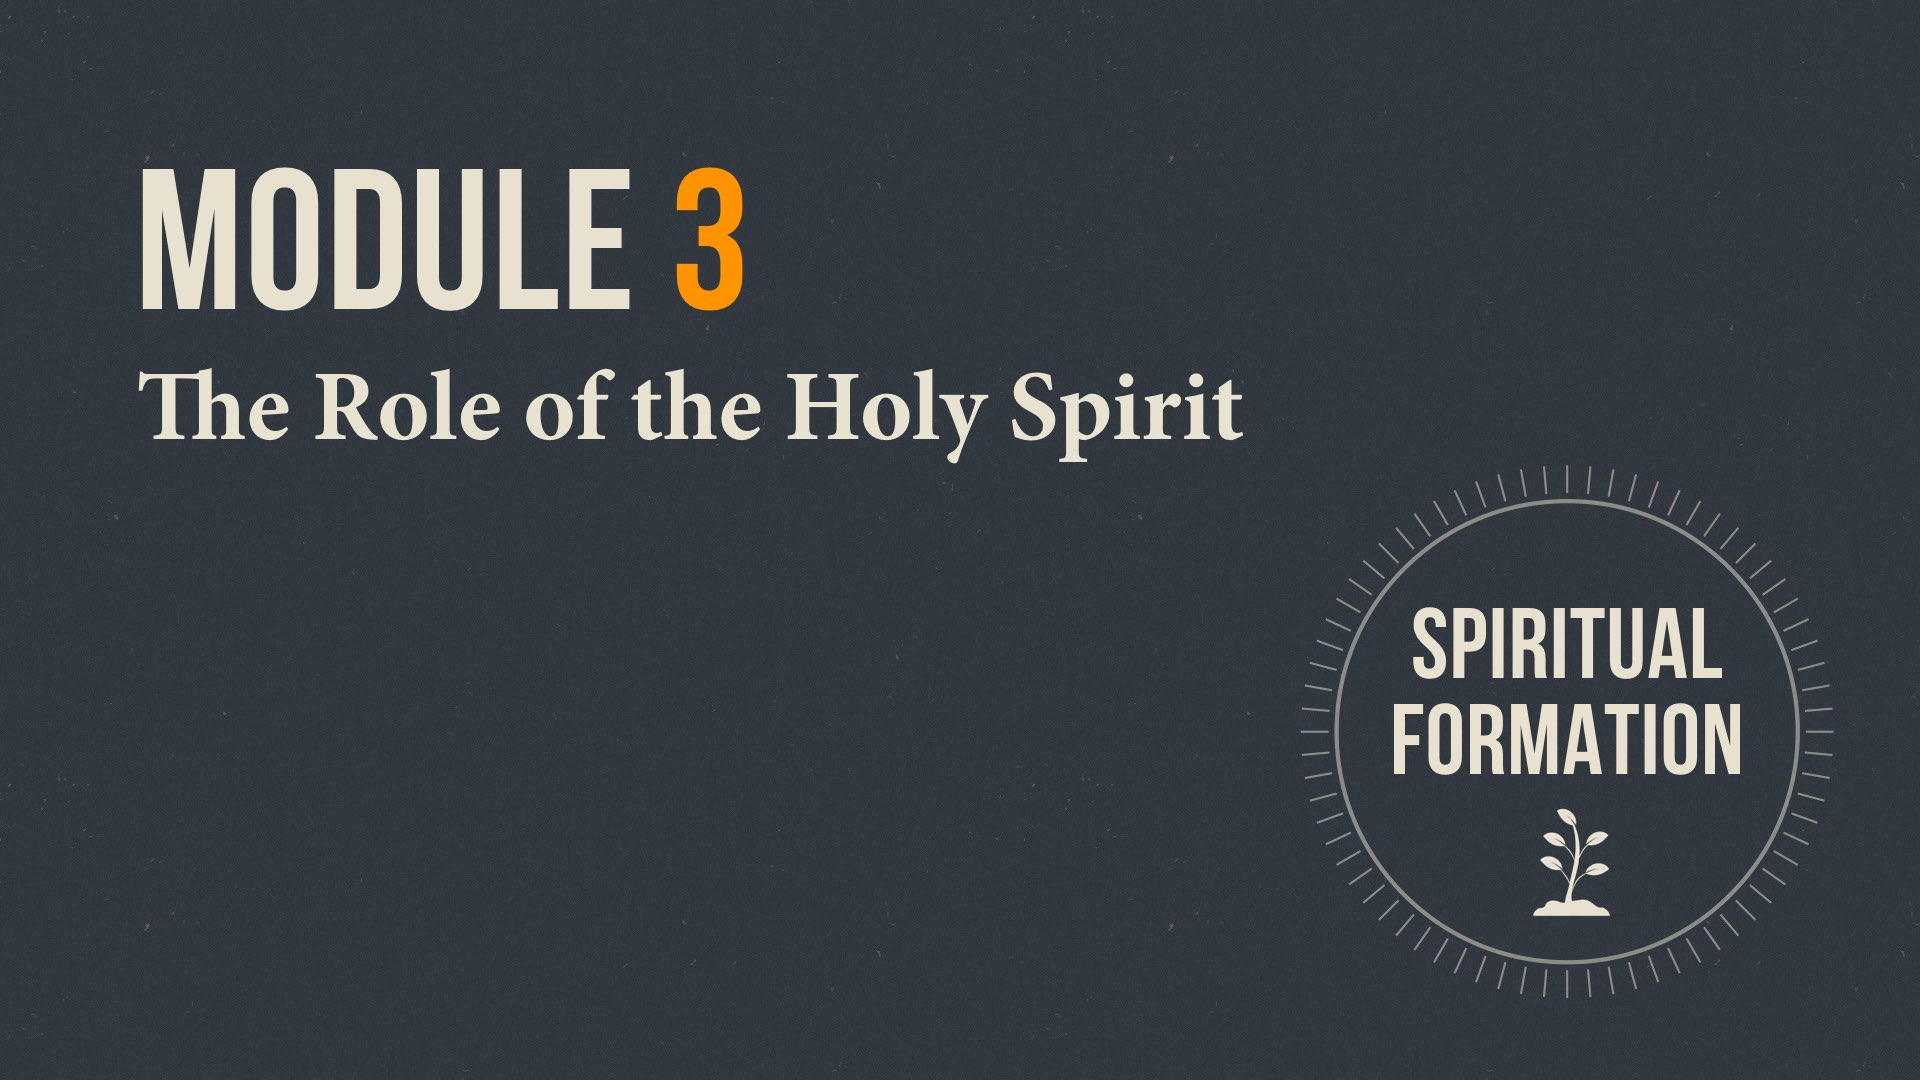 Module 3 Title Slide - The Role of the Holy Spirit